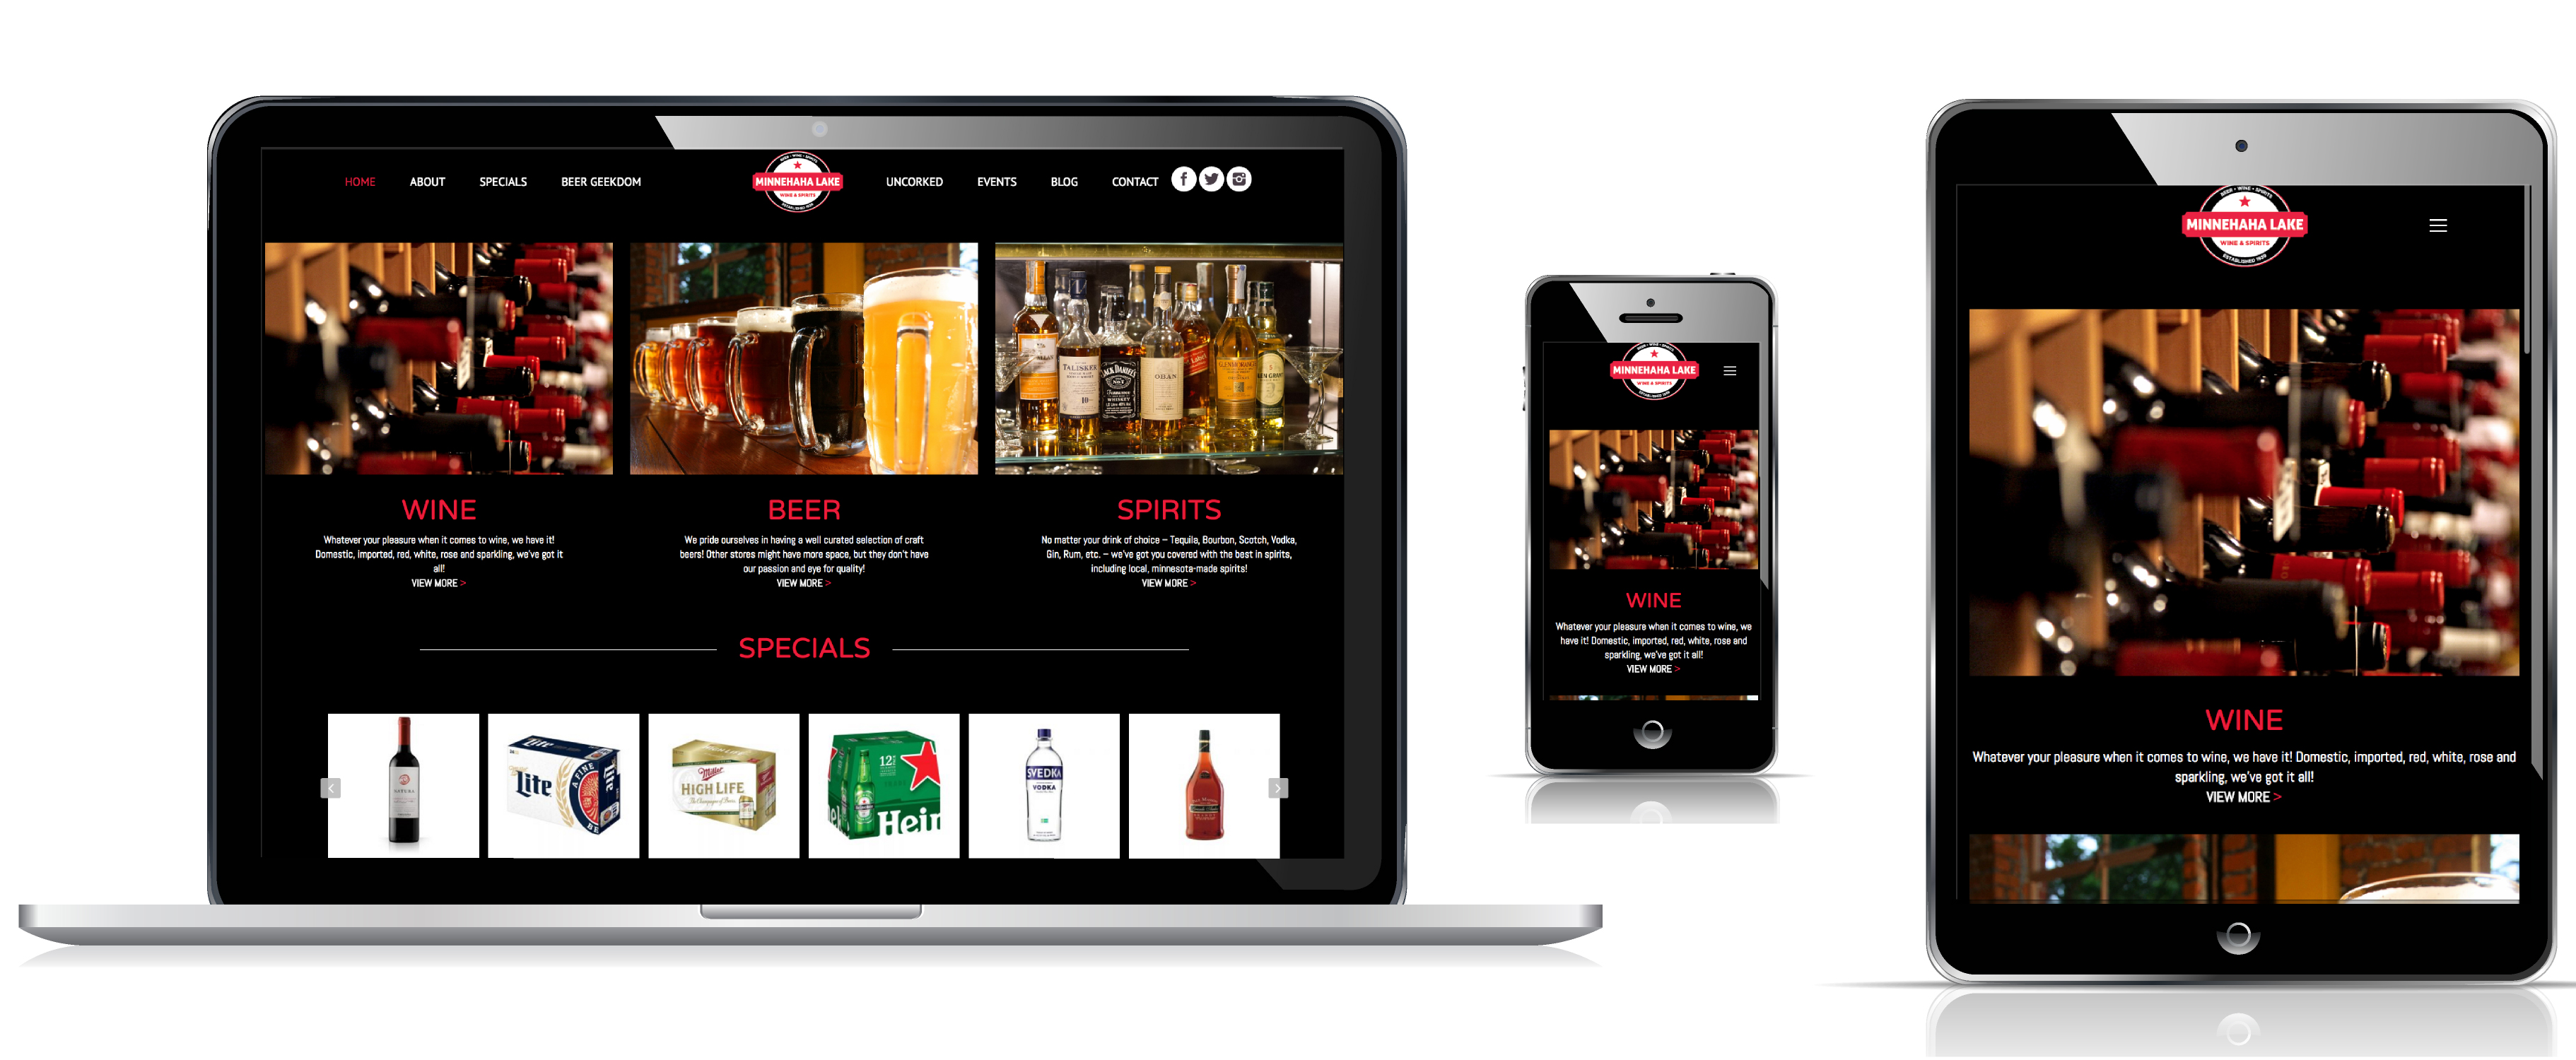 Minneahaha Liquors Website Design and Development